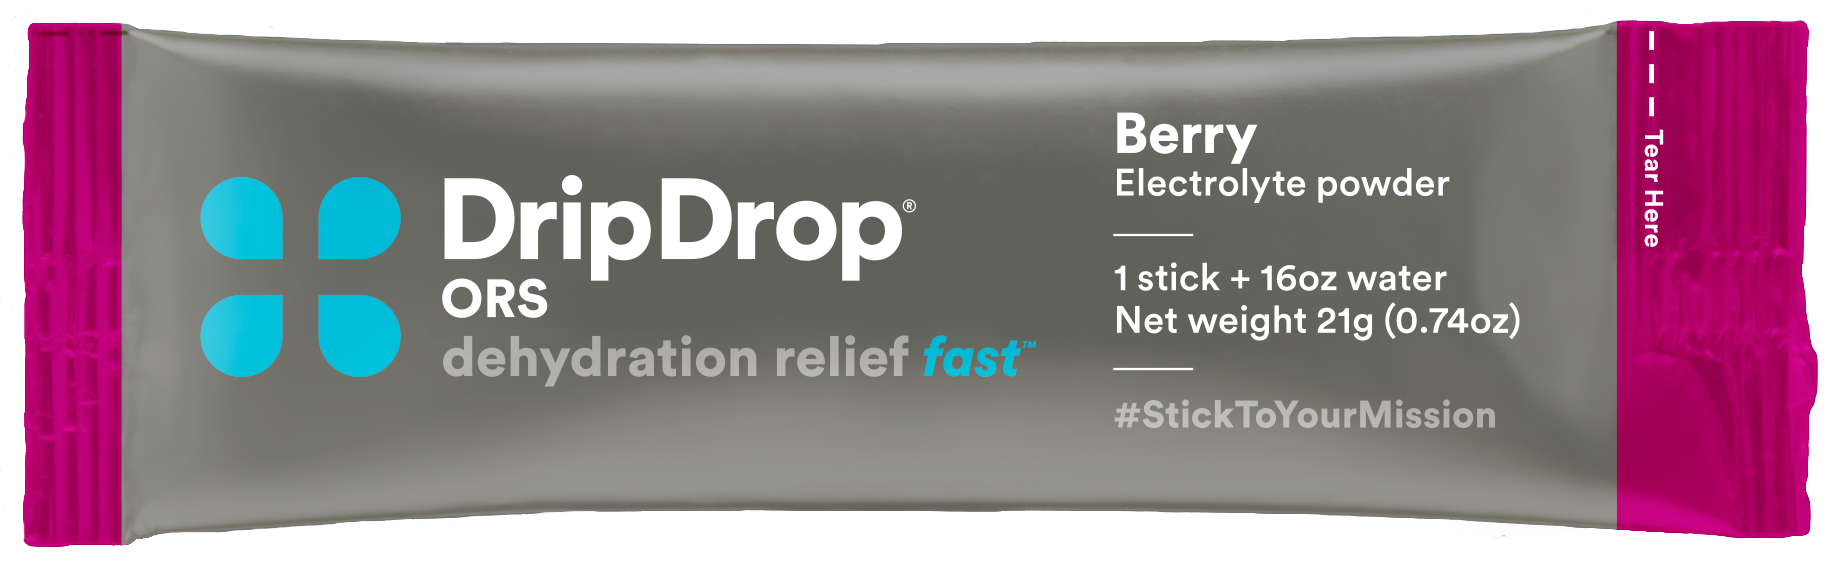 DripDrop Electrolyte Oral Hydration Powder 00132